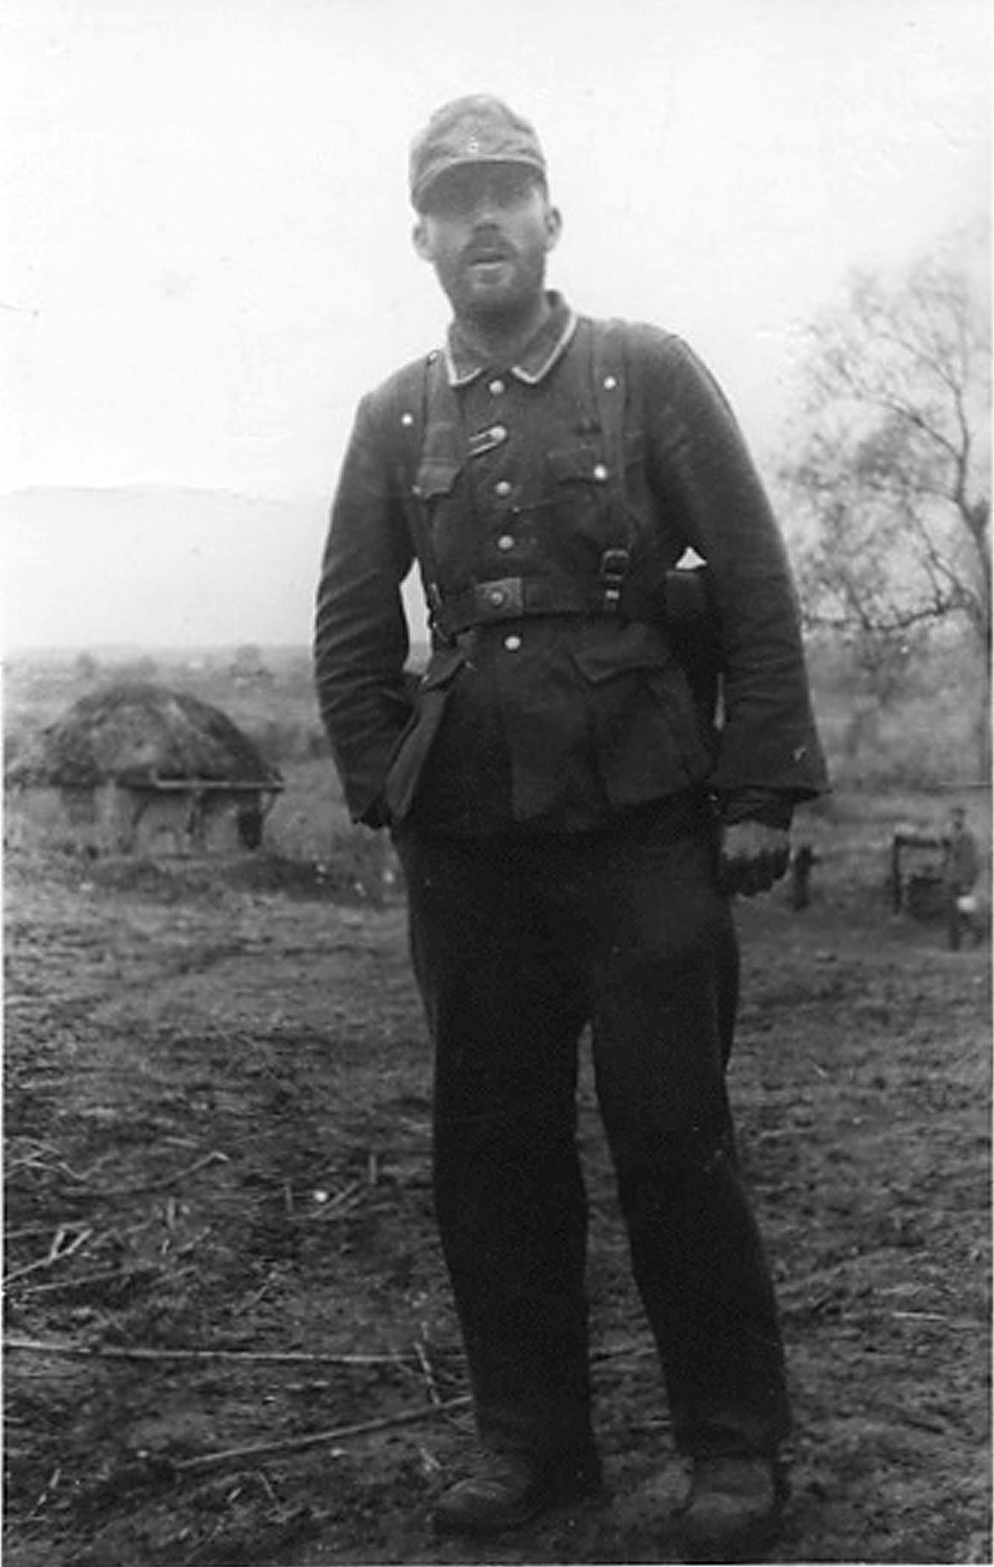 Ukraine, October 1942 - the last surviving Platoon Leader of the battalion.